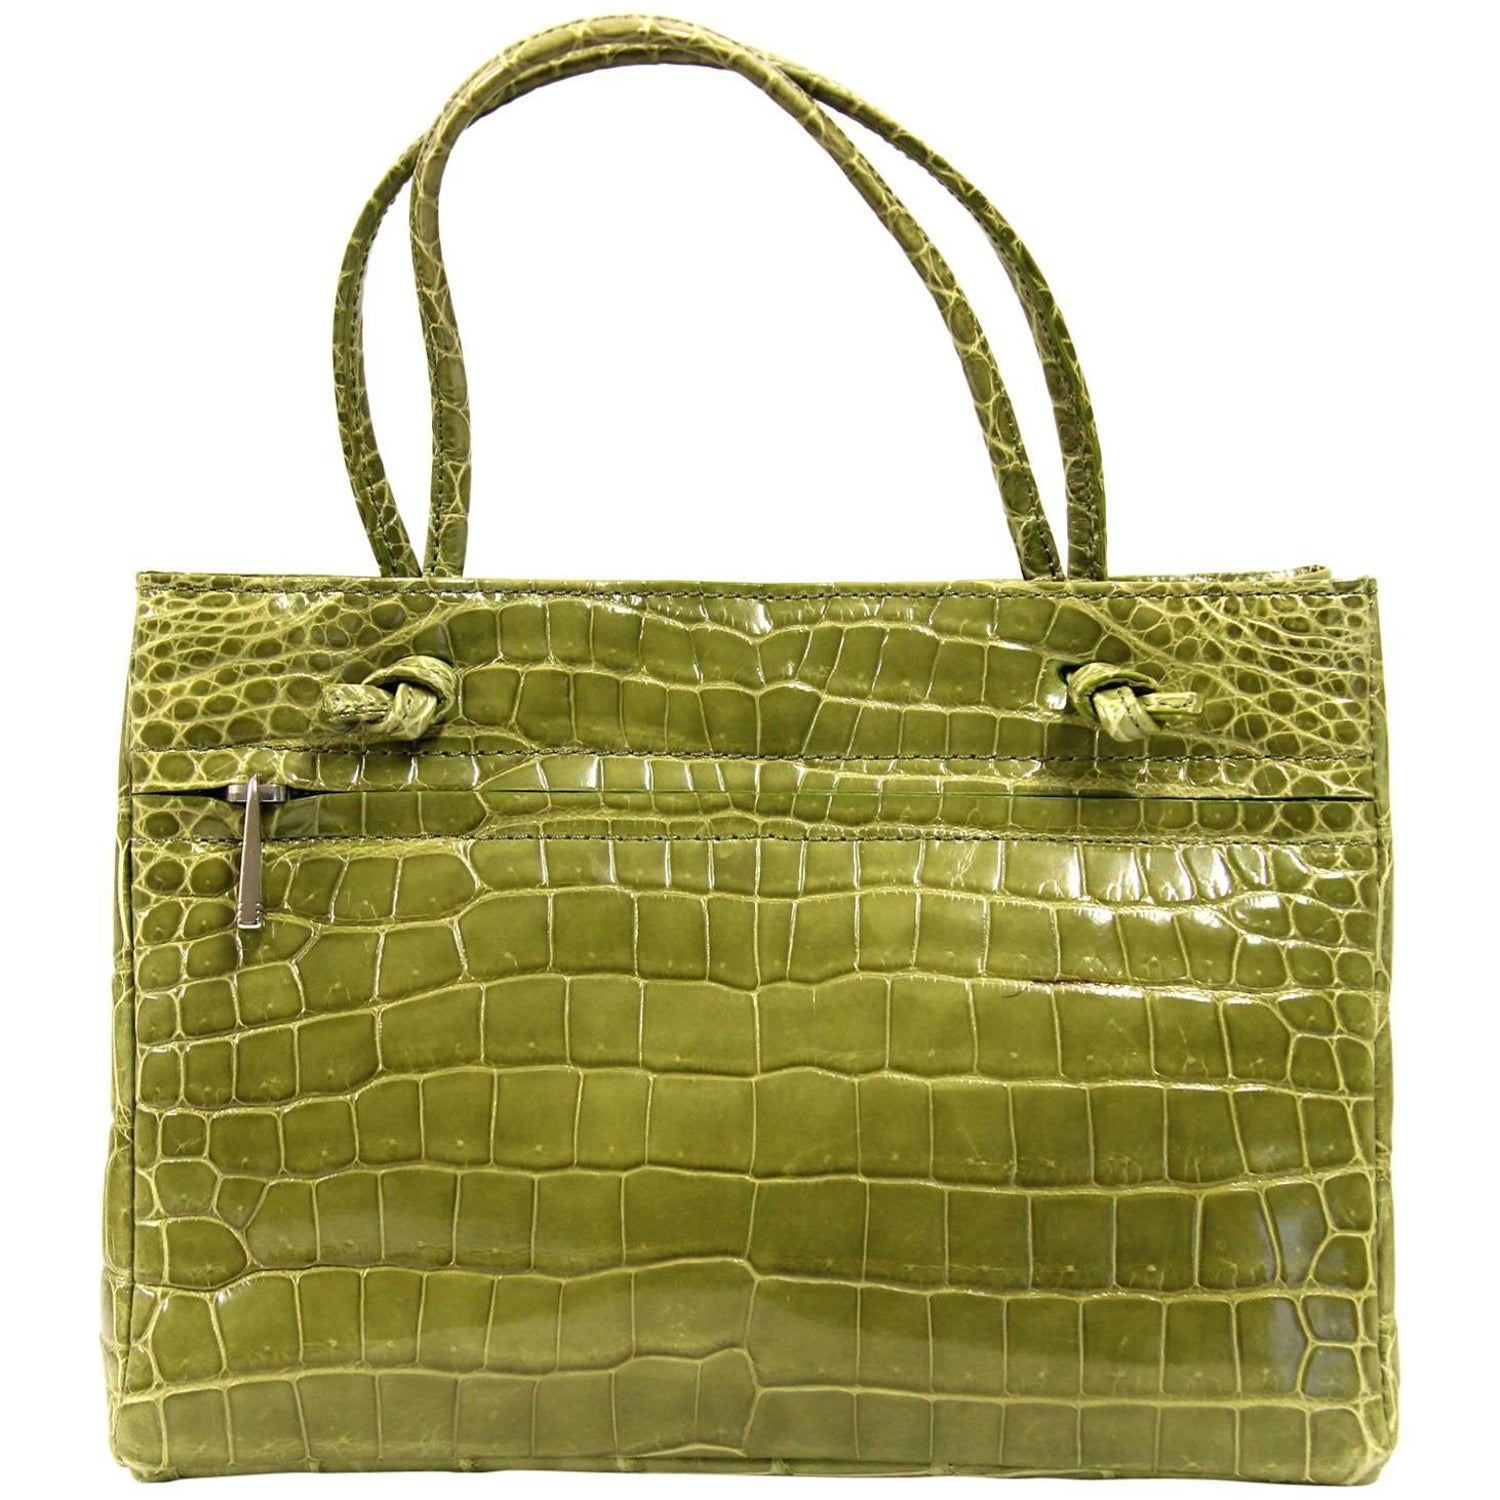 57169d26fc2 Colombo Green Crocodile Leather Vintage Bag, 2000s For Sale at 1stdibs